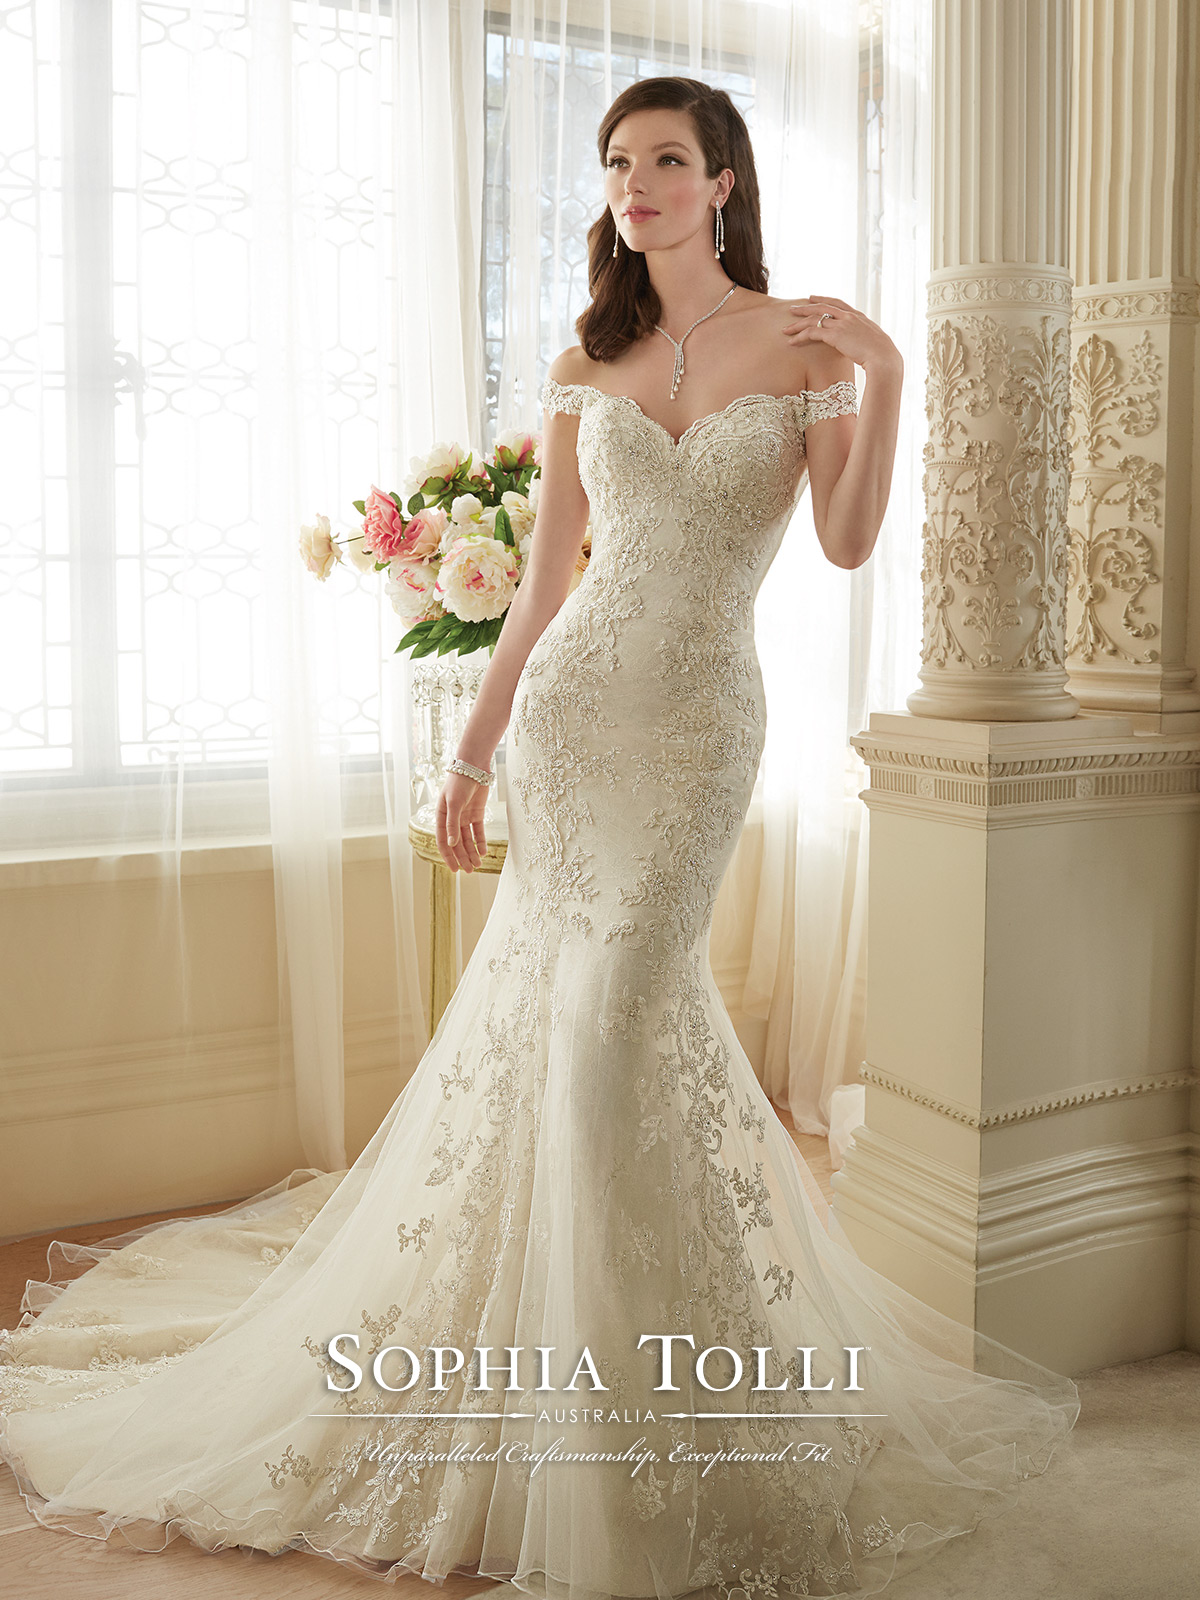 Gorgeous Low Back Sophia Tolli Sample Gown With Crystals And Beading